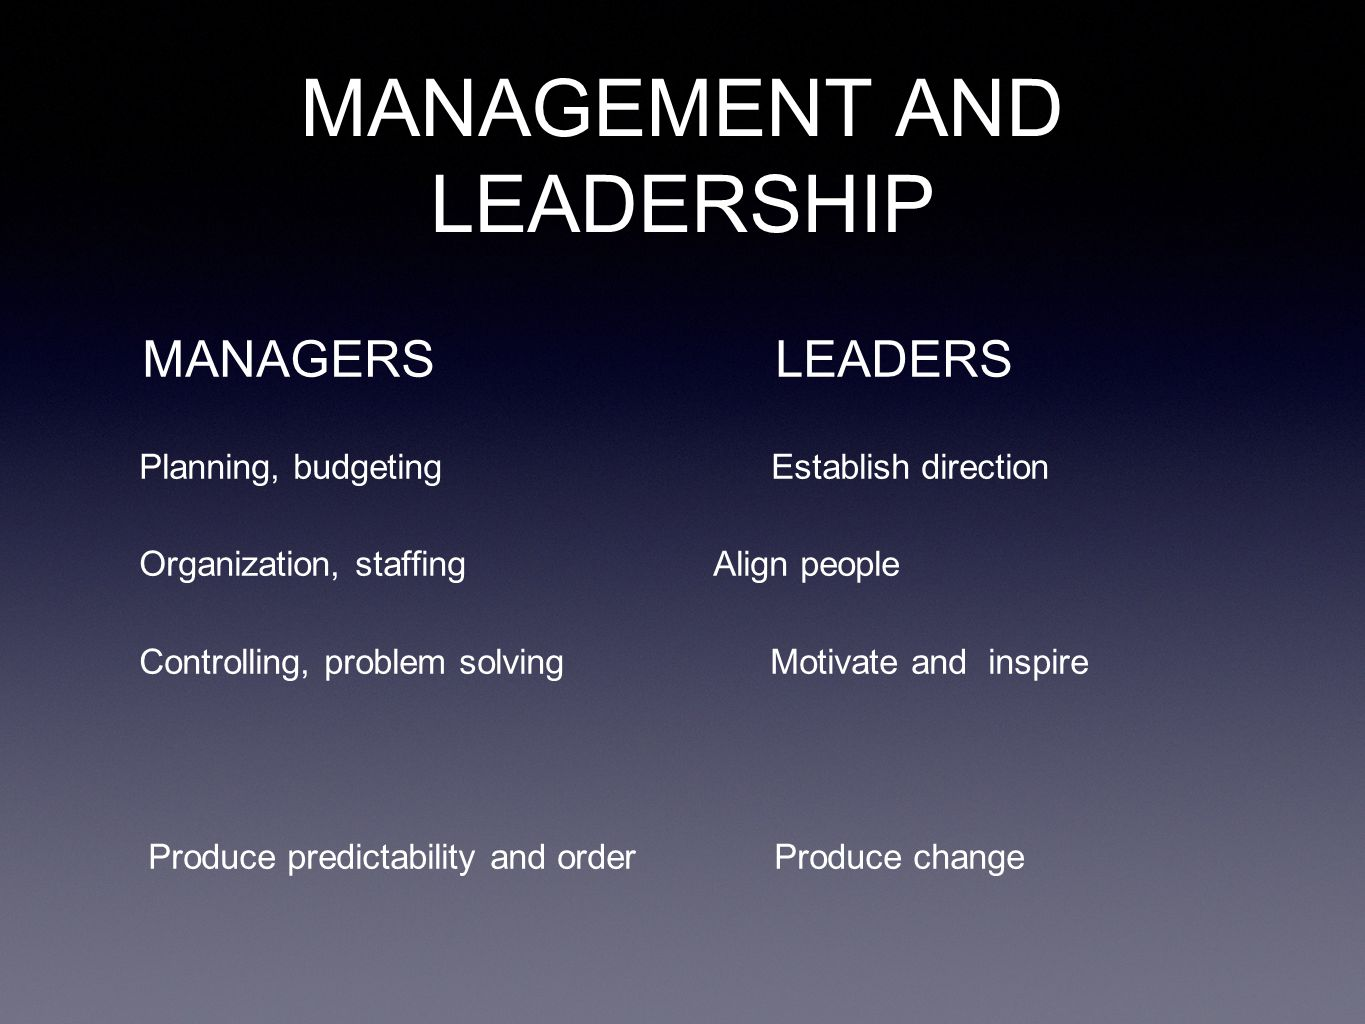 MANAGEMENT AND LEADERSHIP MANAGERSLEADERS Planning, budgeting Establish direction Organization, staffingAlign people Controlling, problem solving Motivate and inspire Produce predictability and order Produce change